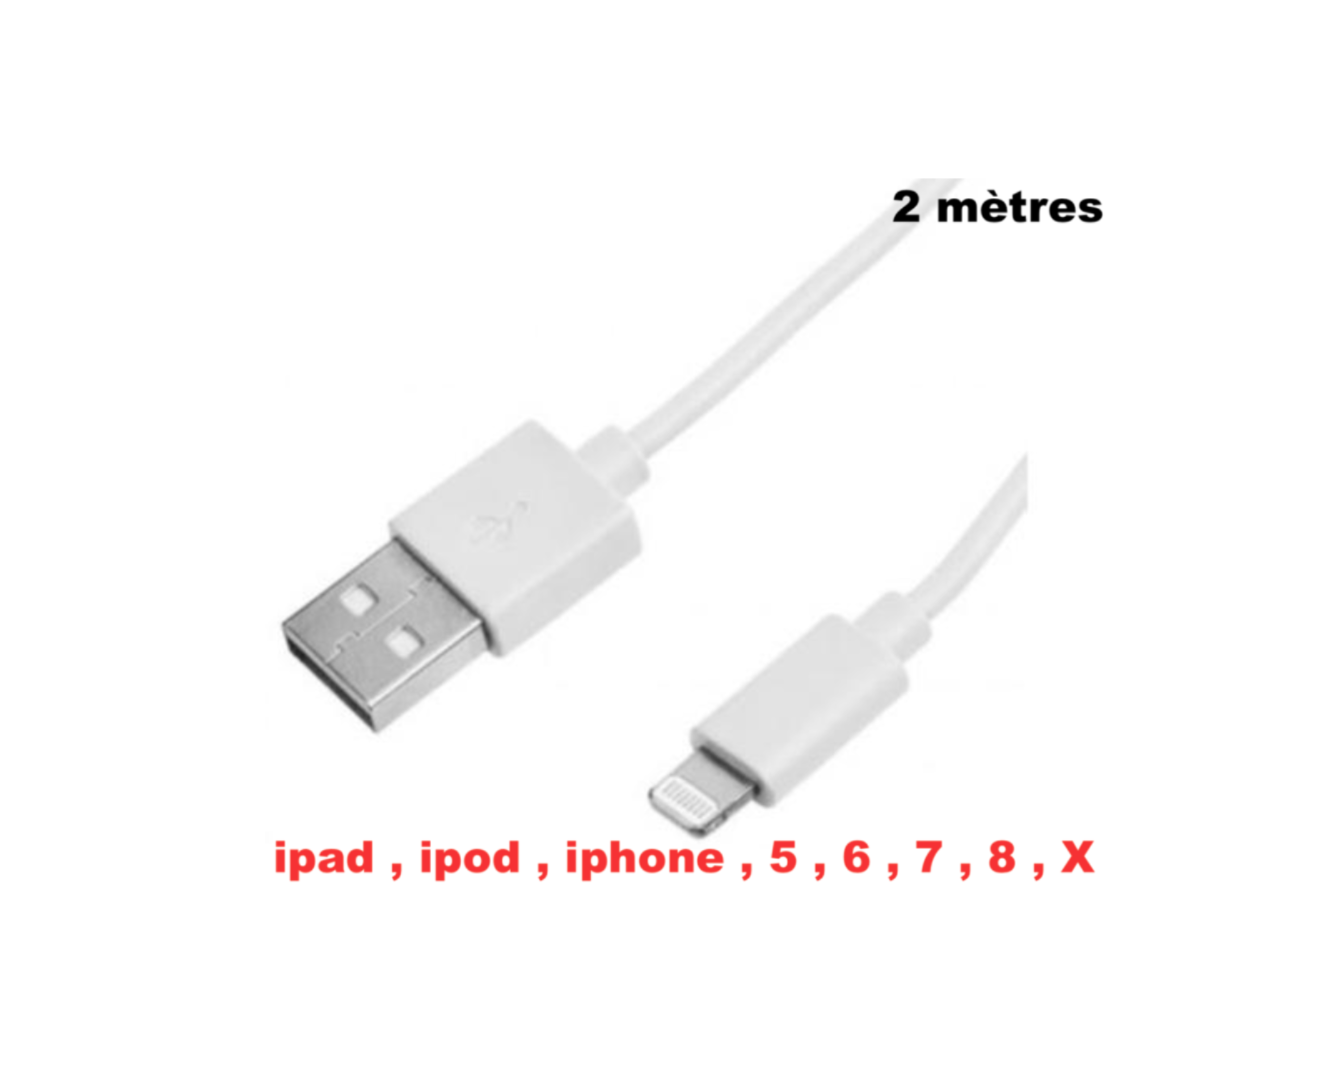 FOR APPLE LIGHTHING CABLE CHARGE 2M SYNC IPOD IPAD IPHONE 1M SECURITE 5053834241625 CAR TRUCK QUAD VEHICULE VAN AUTO VOITURE COMASOUND KARTEL CSK ONLINE